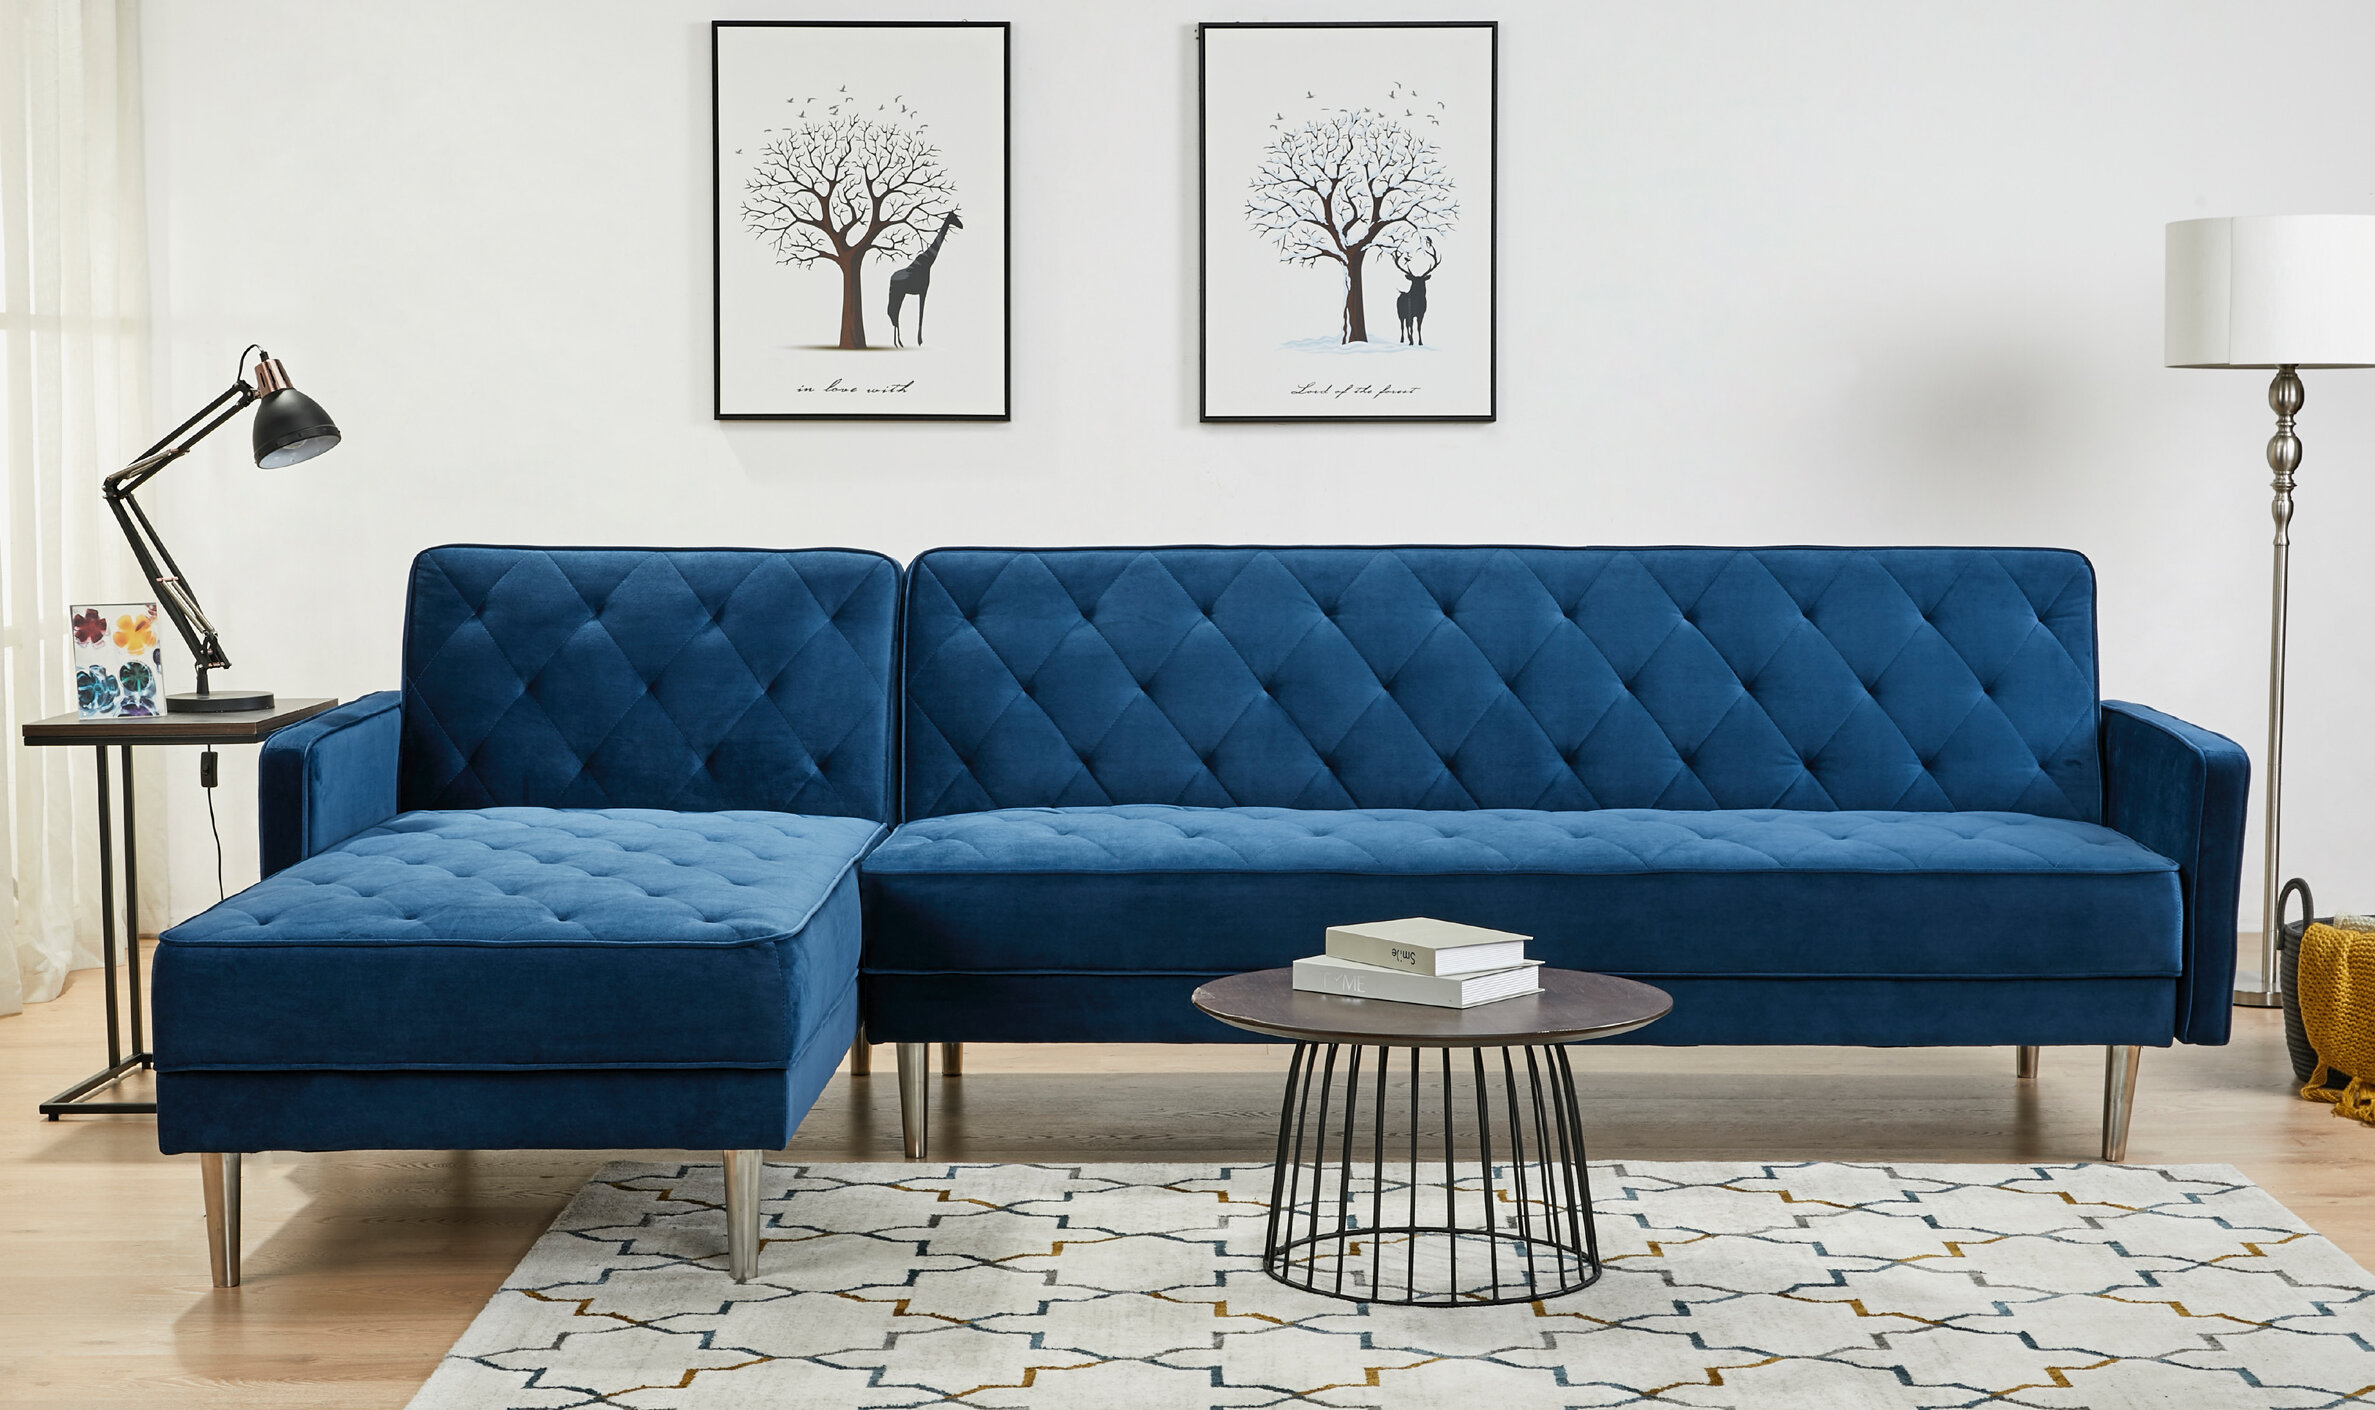 Navy Blue Sectional Couch You Ll Love In 2021 Visualhunt